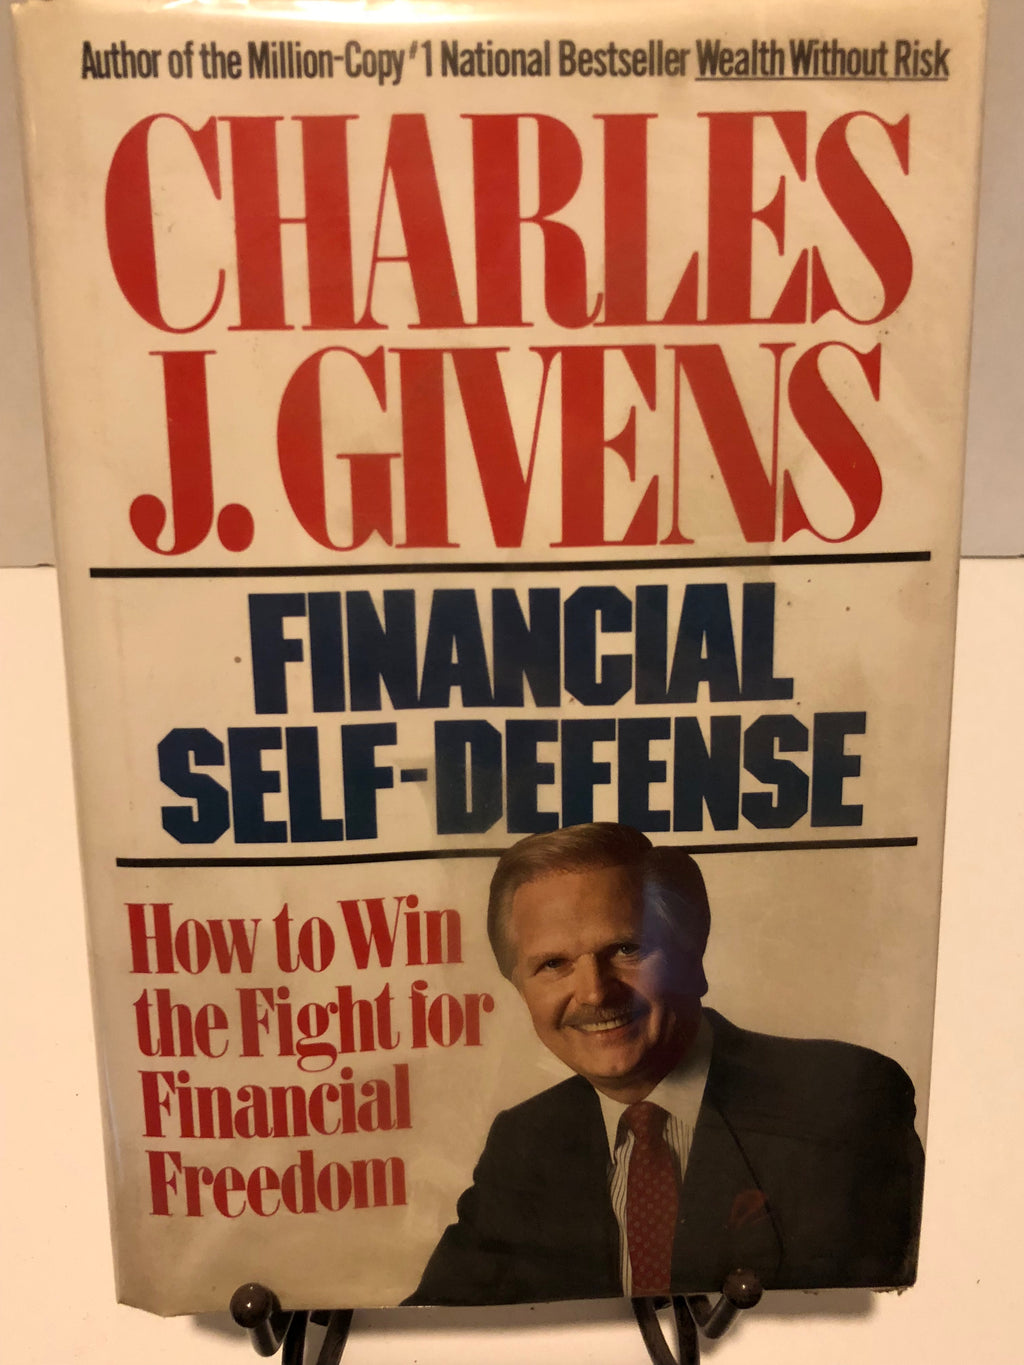 Financial Self-Defense: How to Win the Fight for Financial Freedom